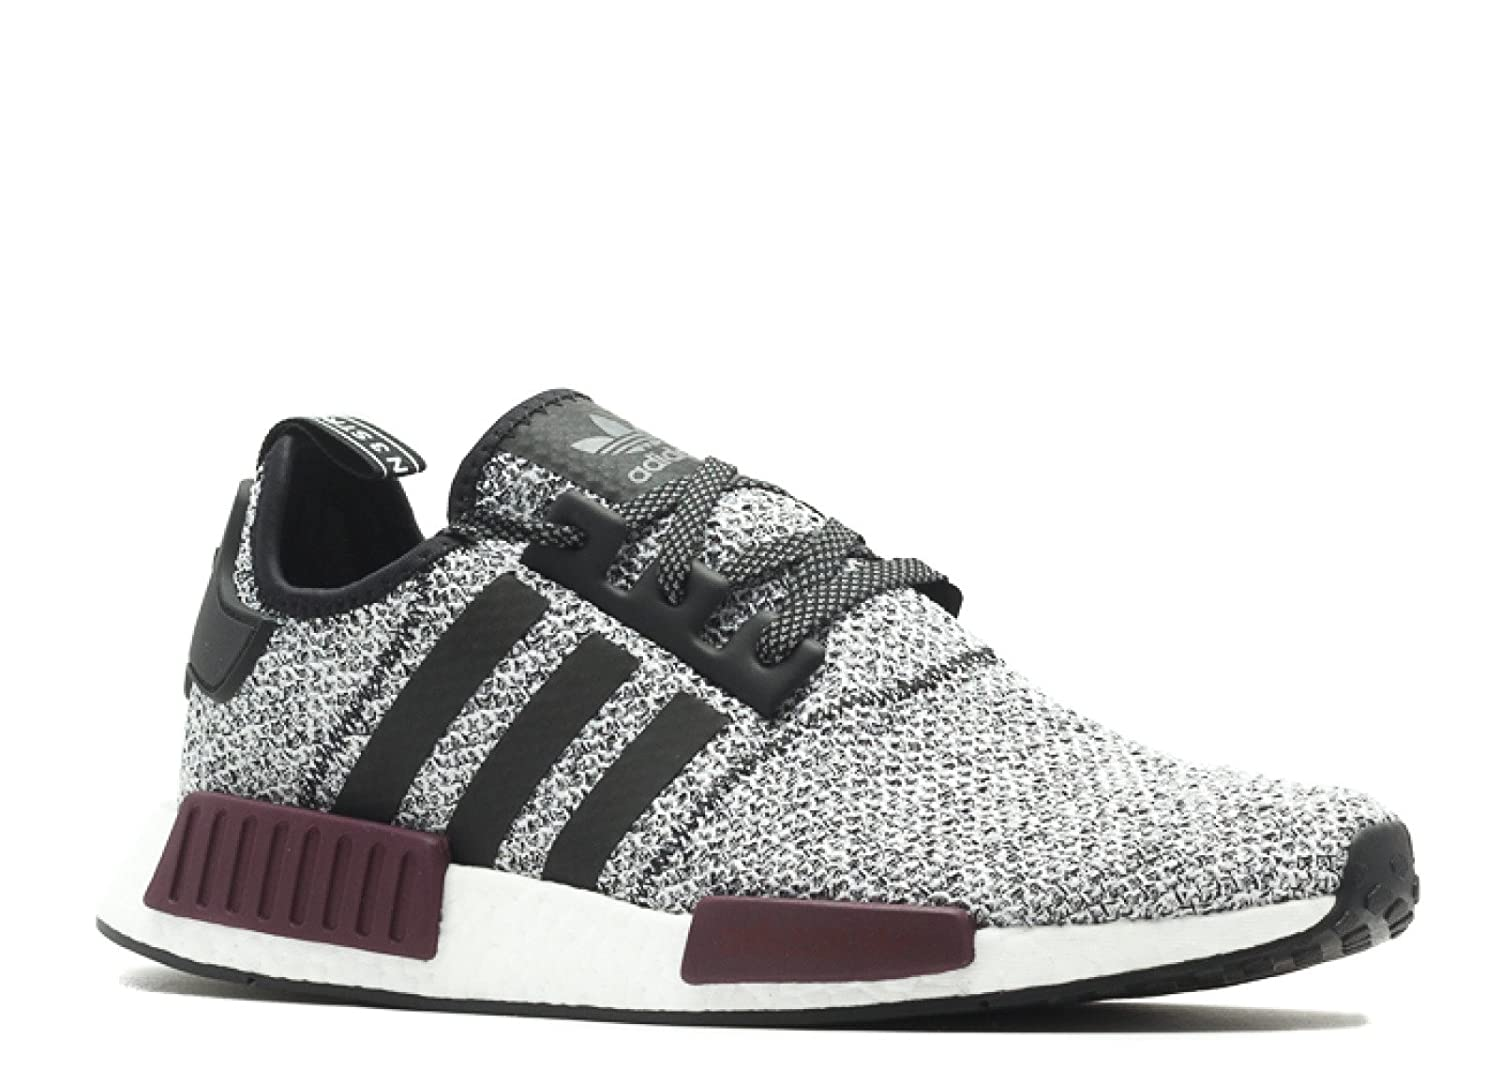 buy online 1e88f 83d81 Amazon.com   adidas Men s Originals NMD R1 Black Black Purple Mesh Running  Shoes 10 M US   Running